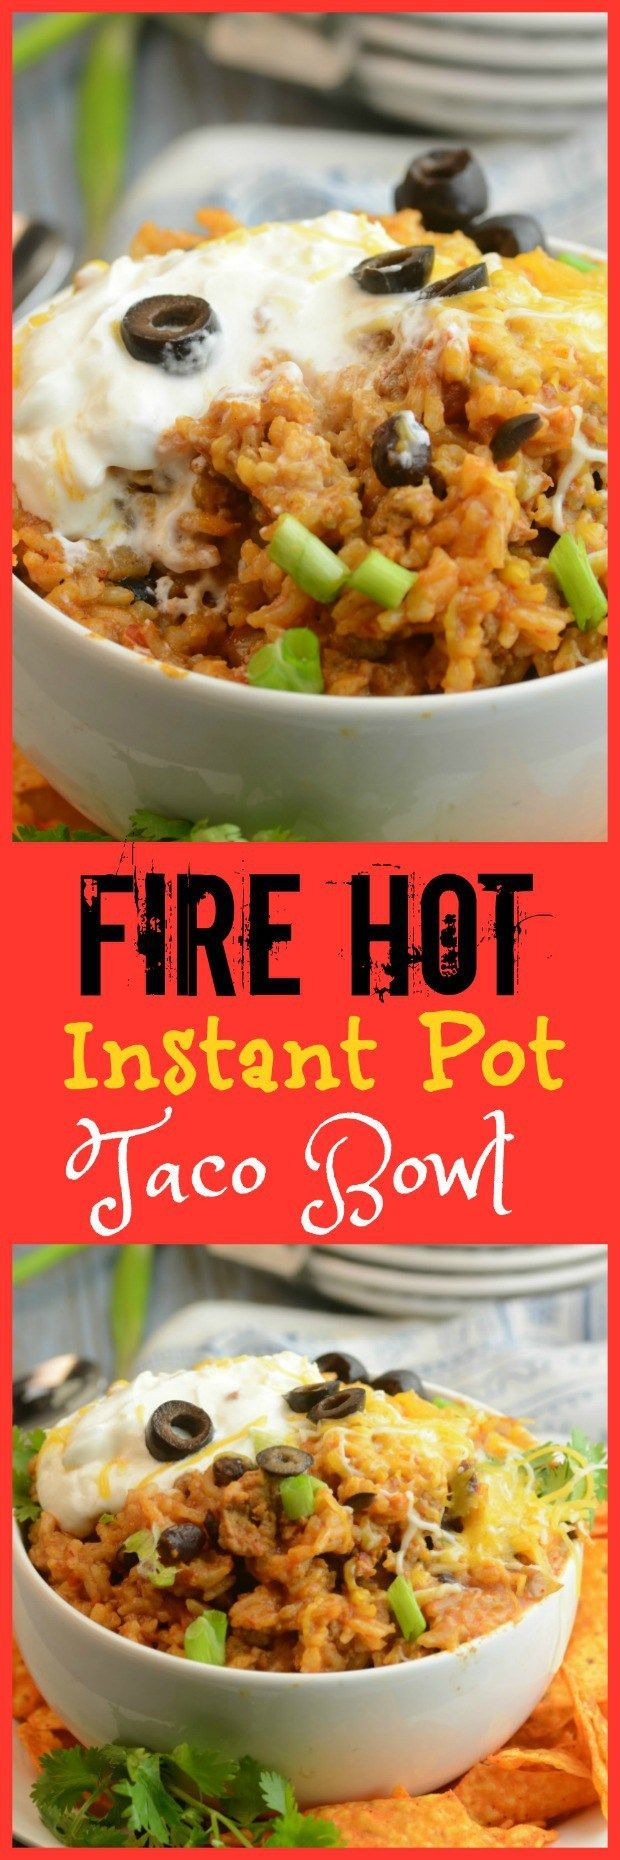 Fire Hot Instant Pot Taco Bowl Recipe (With images